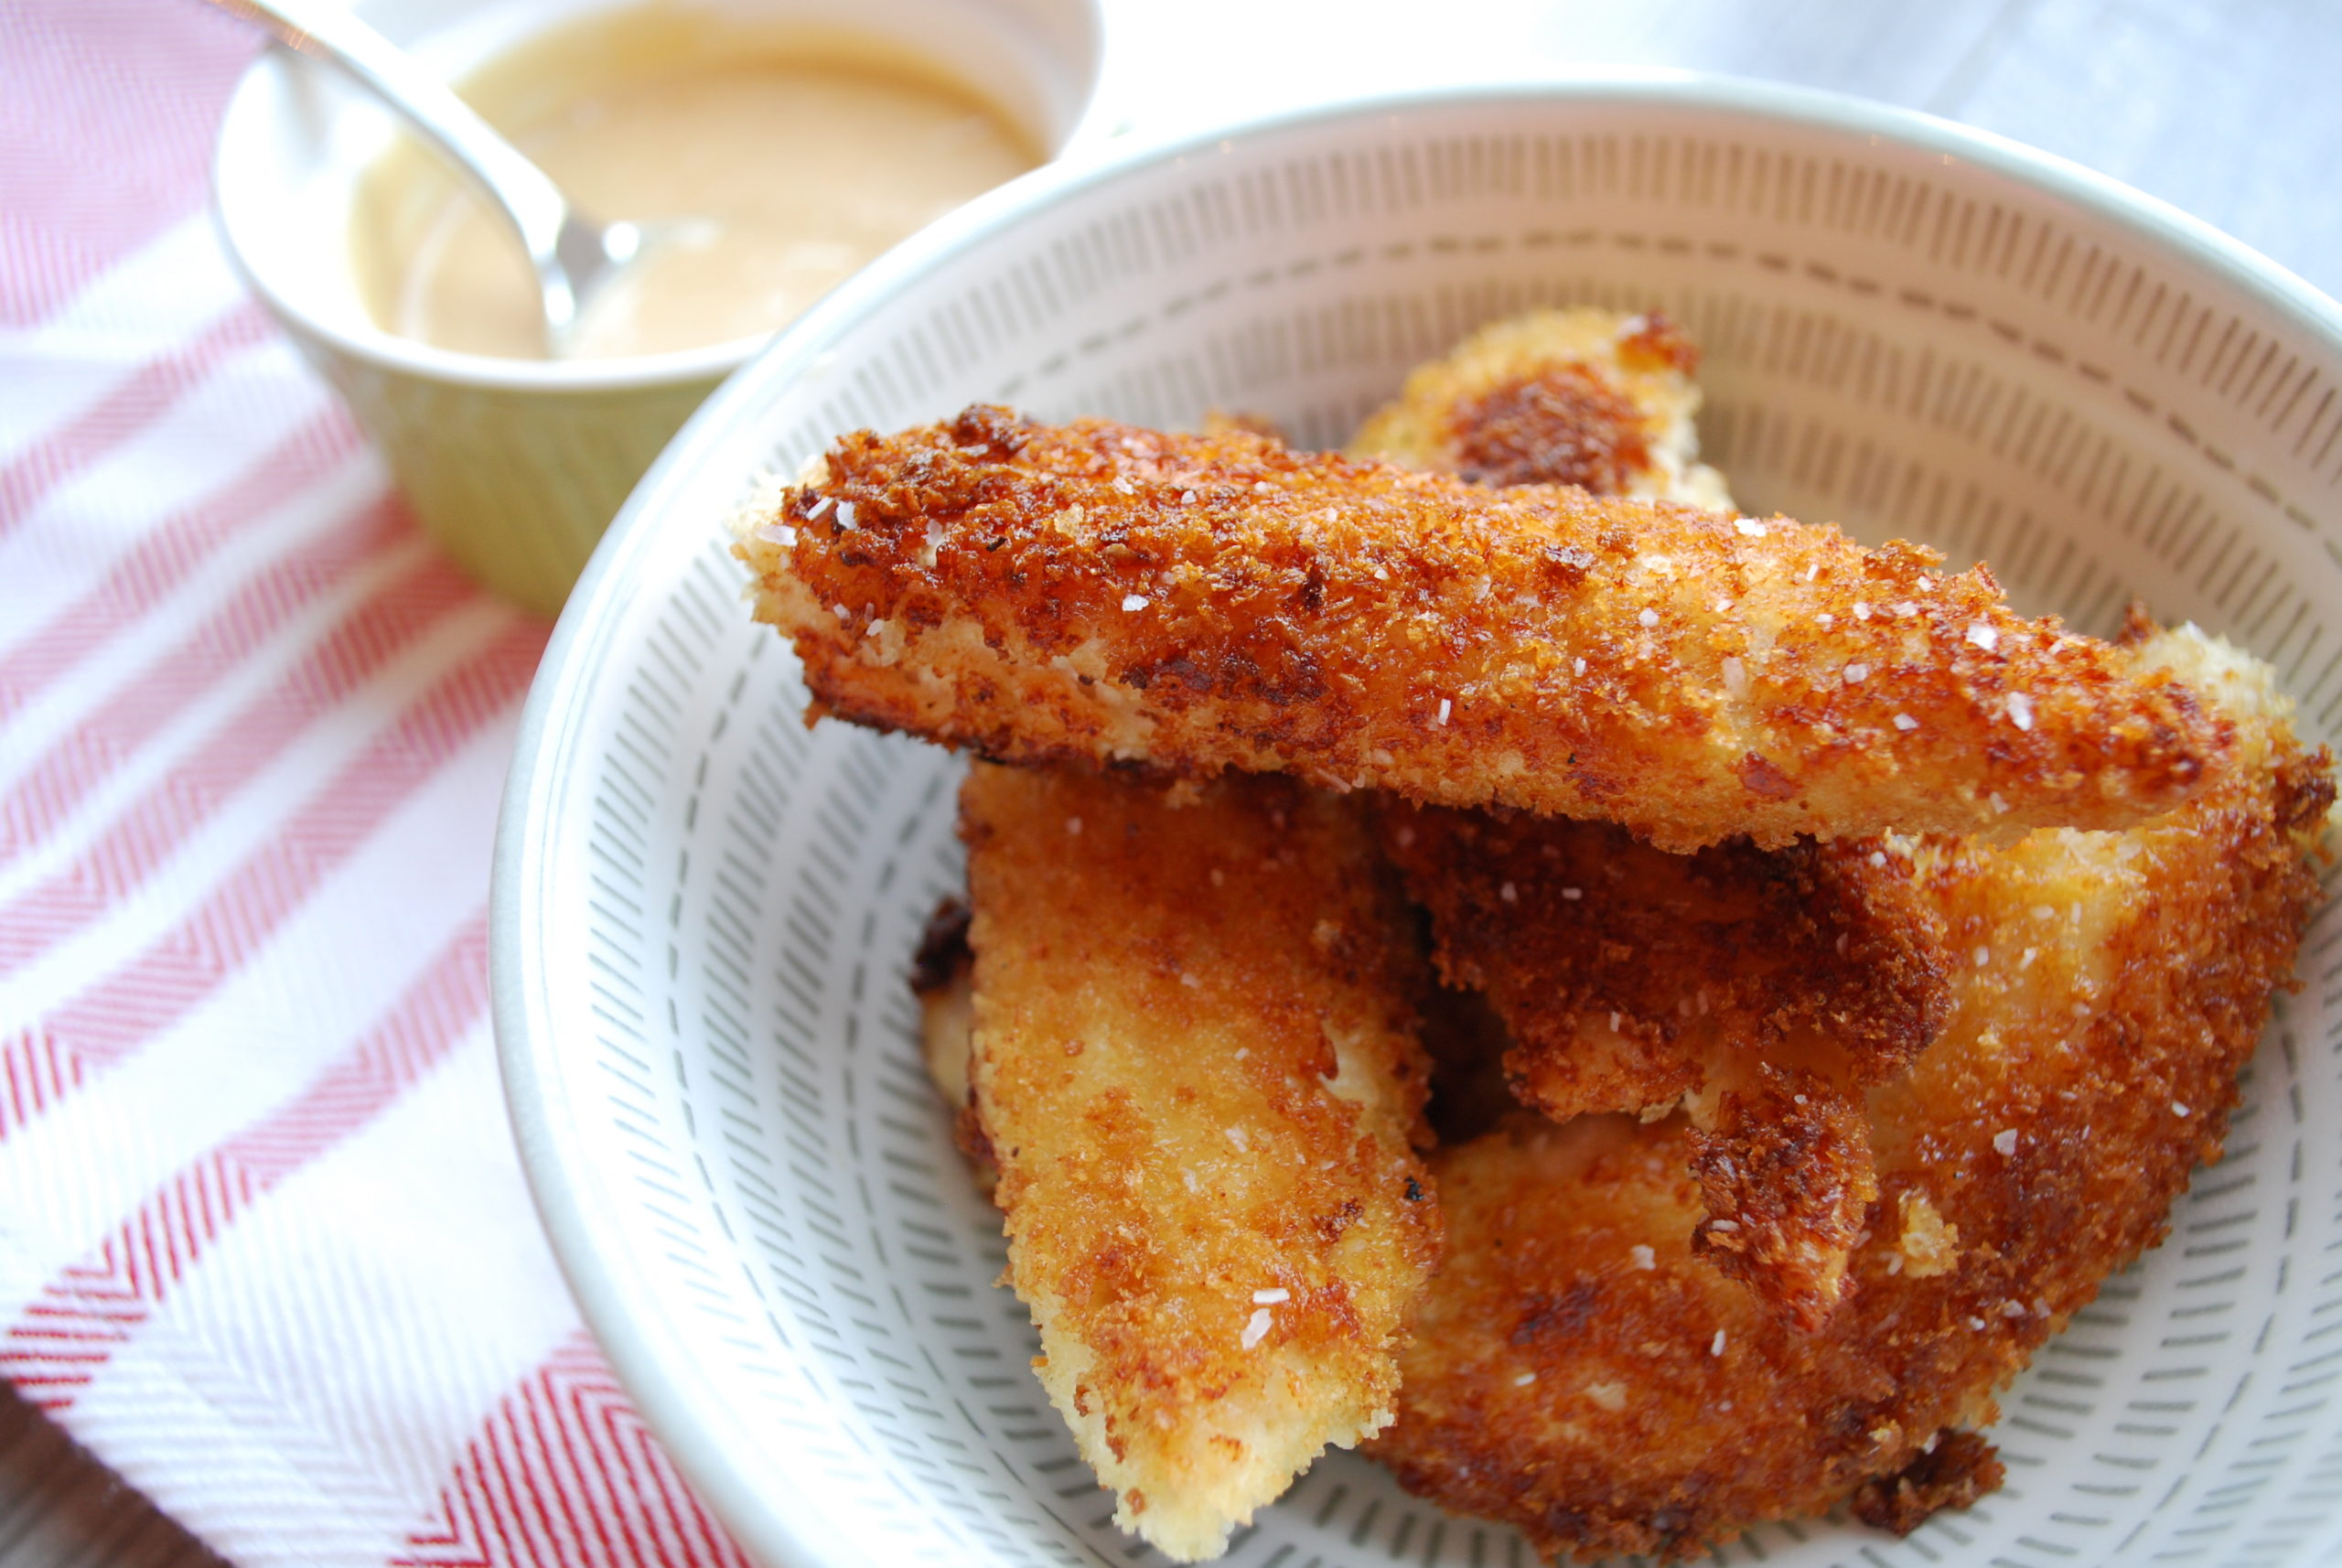 Copy cat chick fil a chicken tenders with chick-fil-a sauce